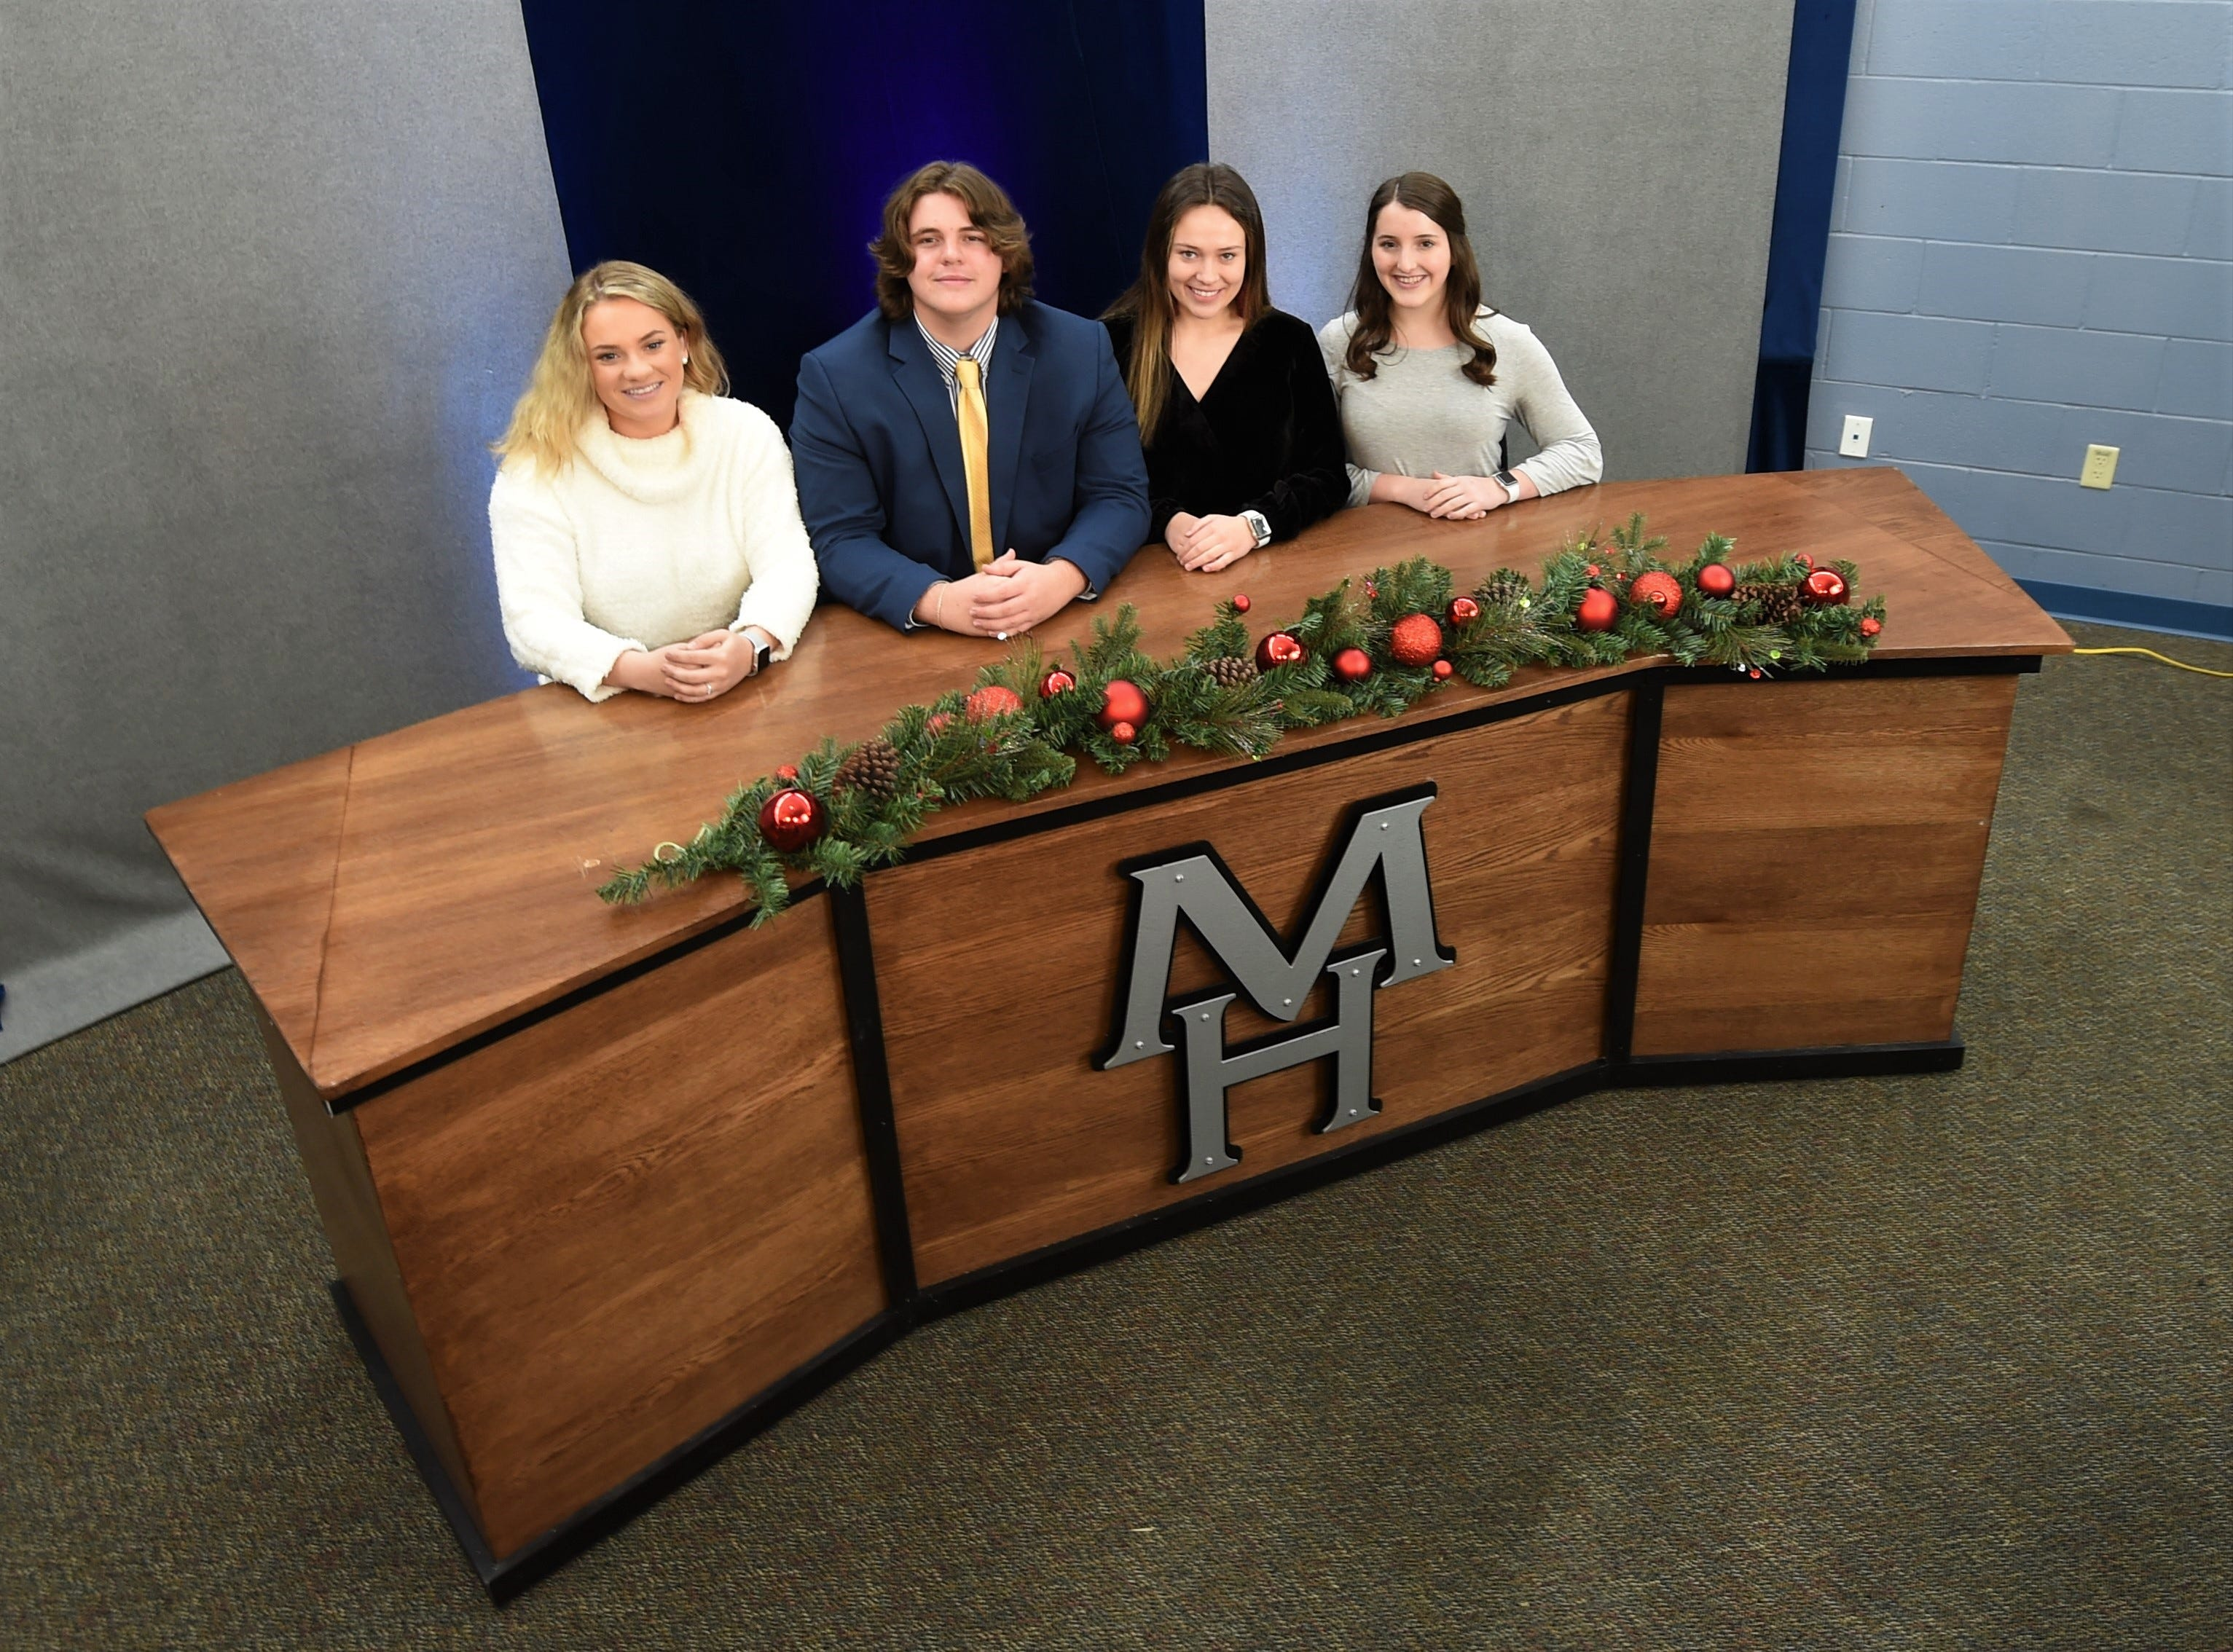 Mountain Home High School EAST students (from left) Courtney Barron, Zachary Spaulding, Sophie Quick and Lauren Dewey are four of the students involved with the Bomber News Network, a weekly TV show the debuts new episodes on Fridays.